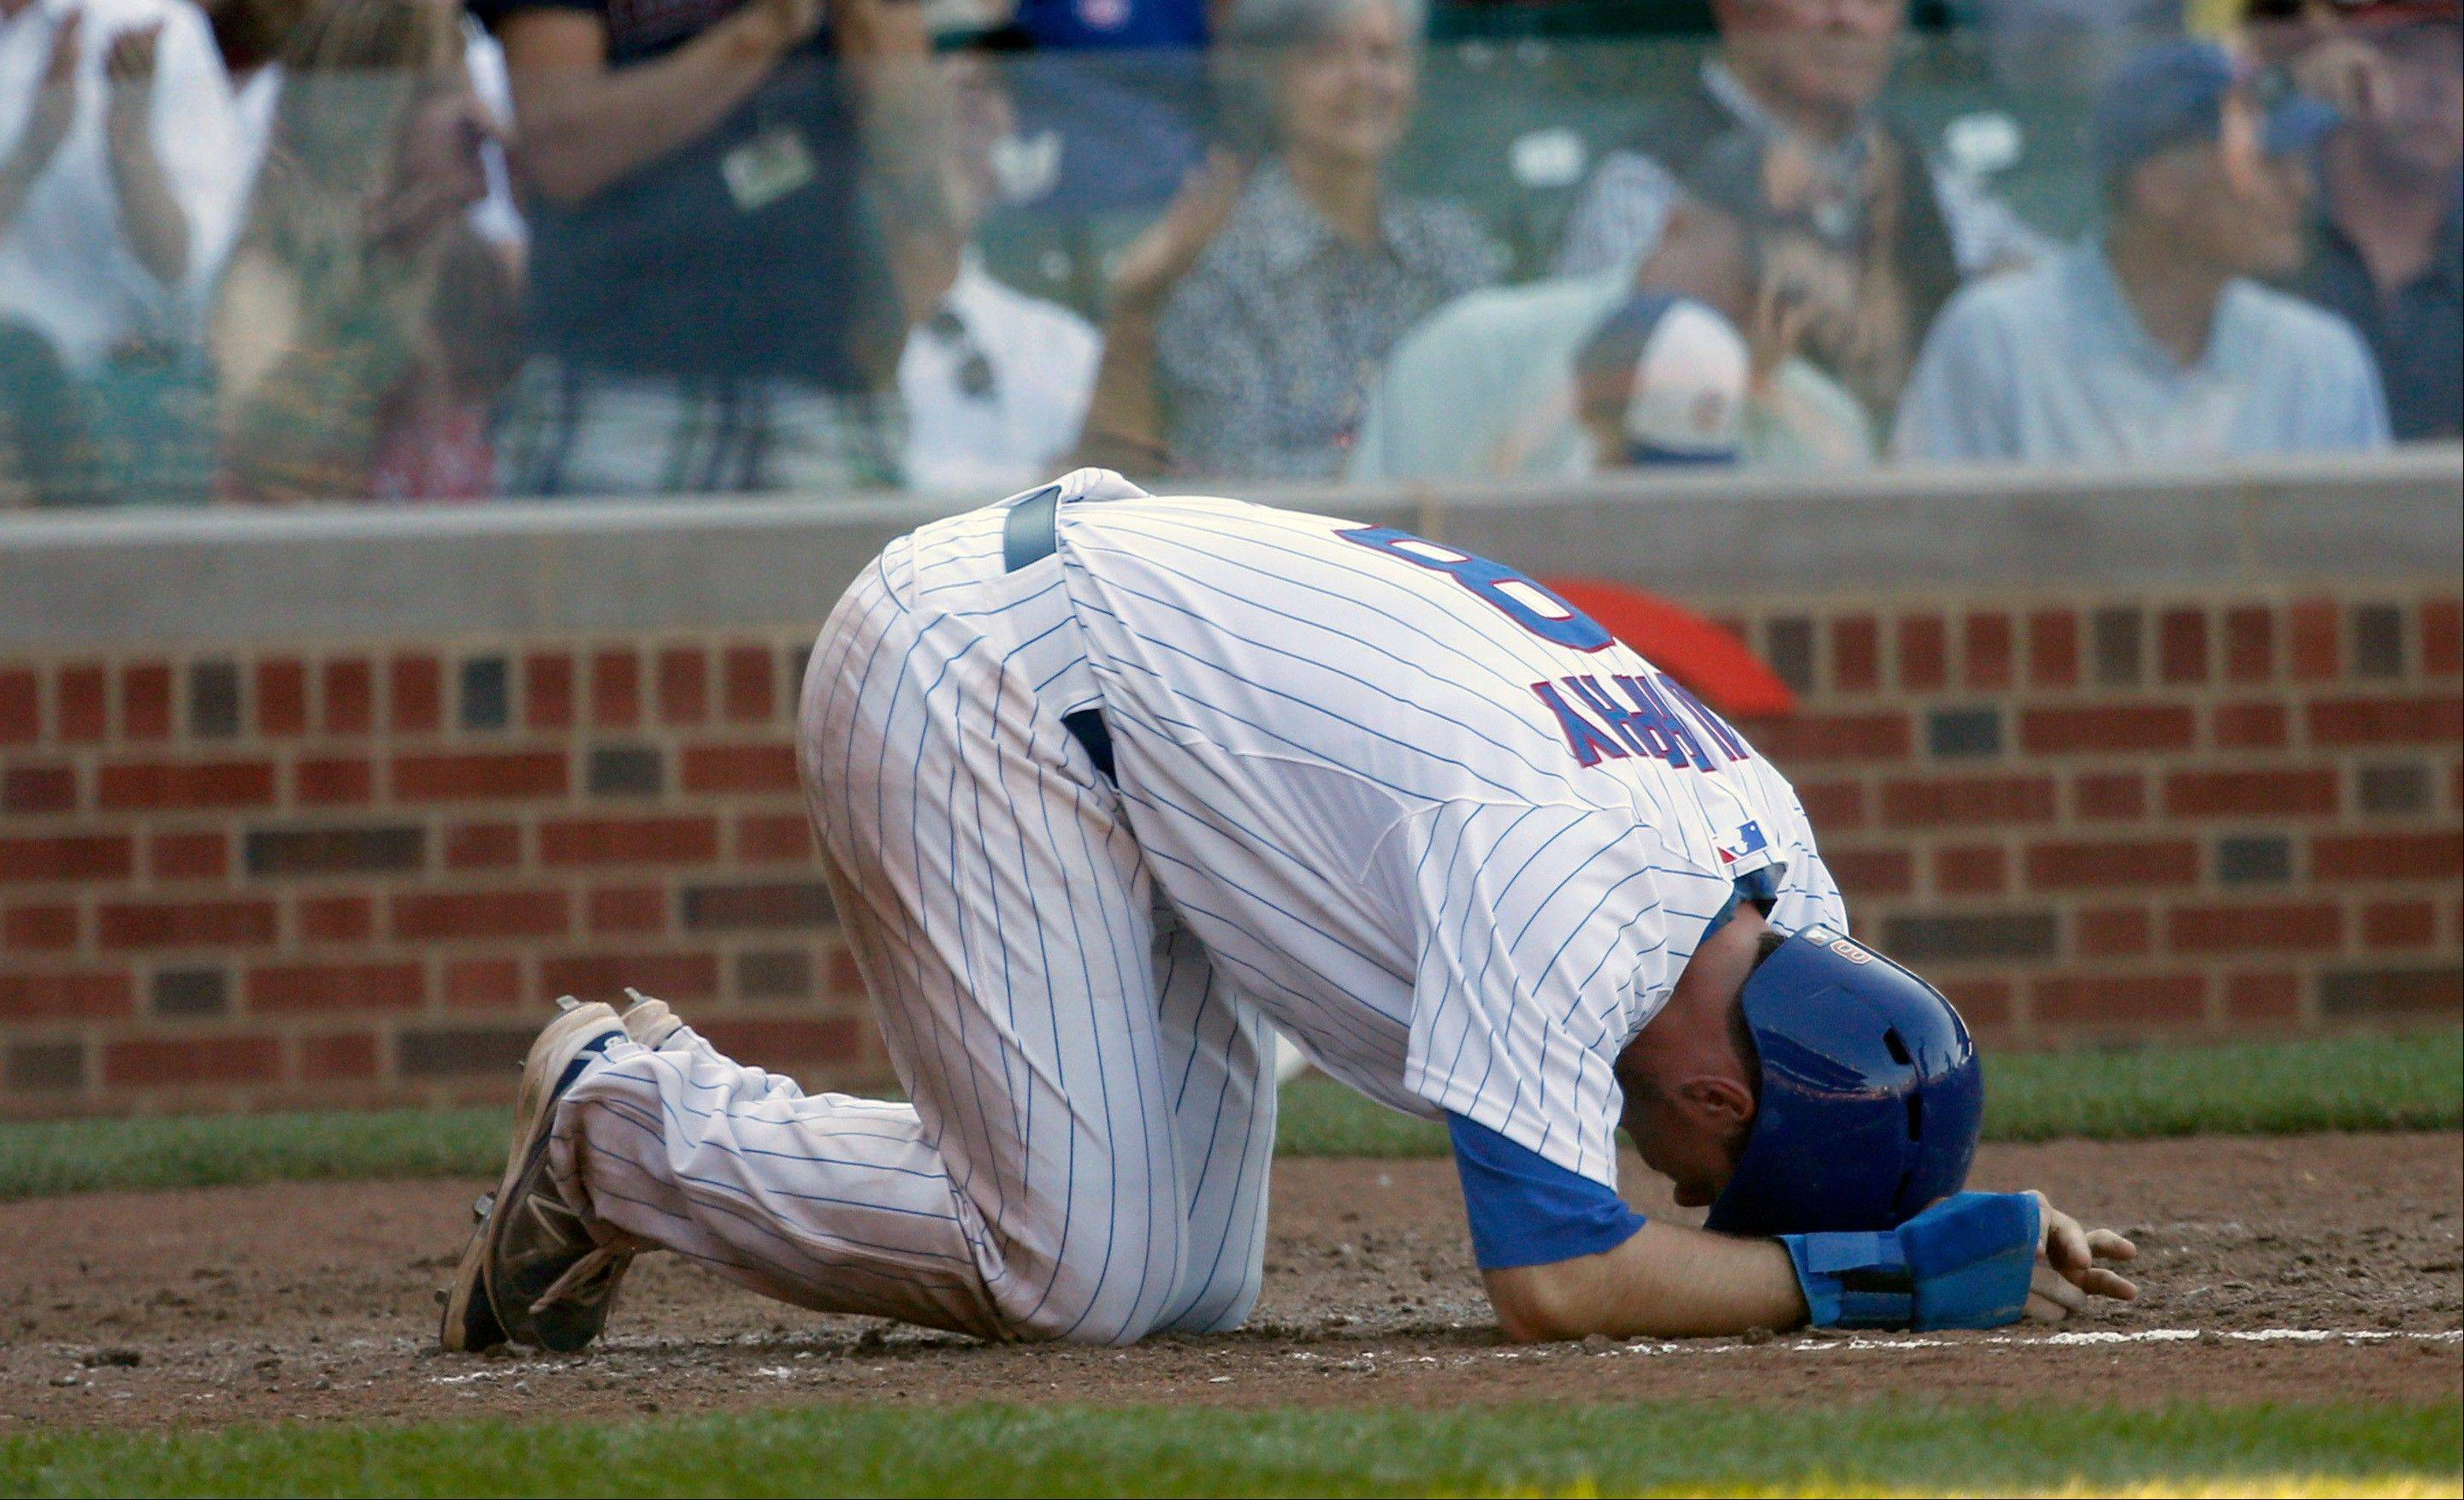 Chicago Cubs' Donnie Murphy bends over at home after scoring past St. Louis Cardinals catcher Rob Johnson on a Darwin Barney double during the sixth inning of a baseball game on Friday, Aug. 16, 2013, in Chicago.